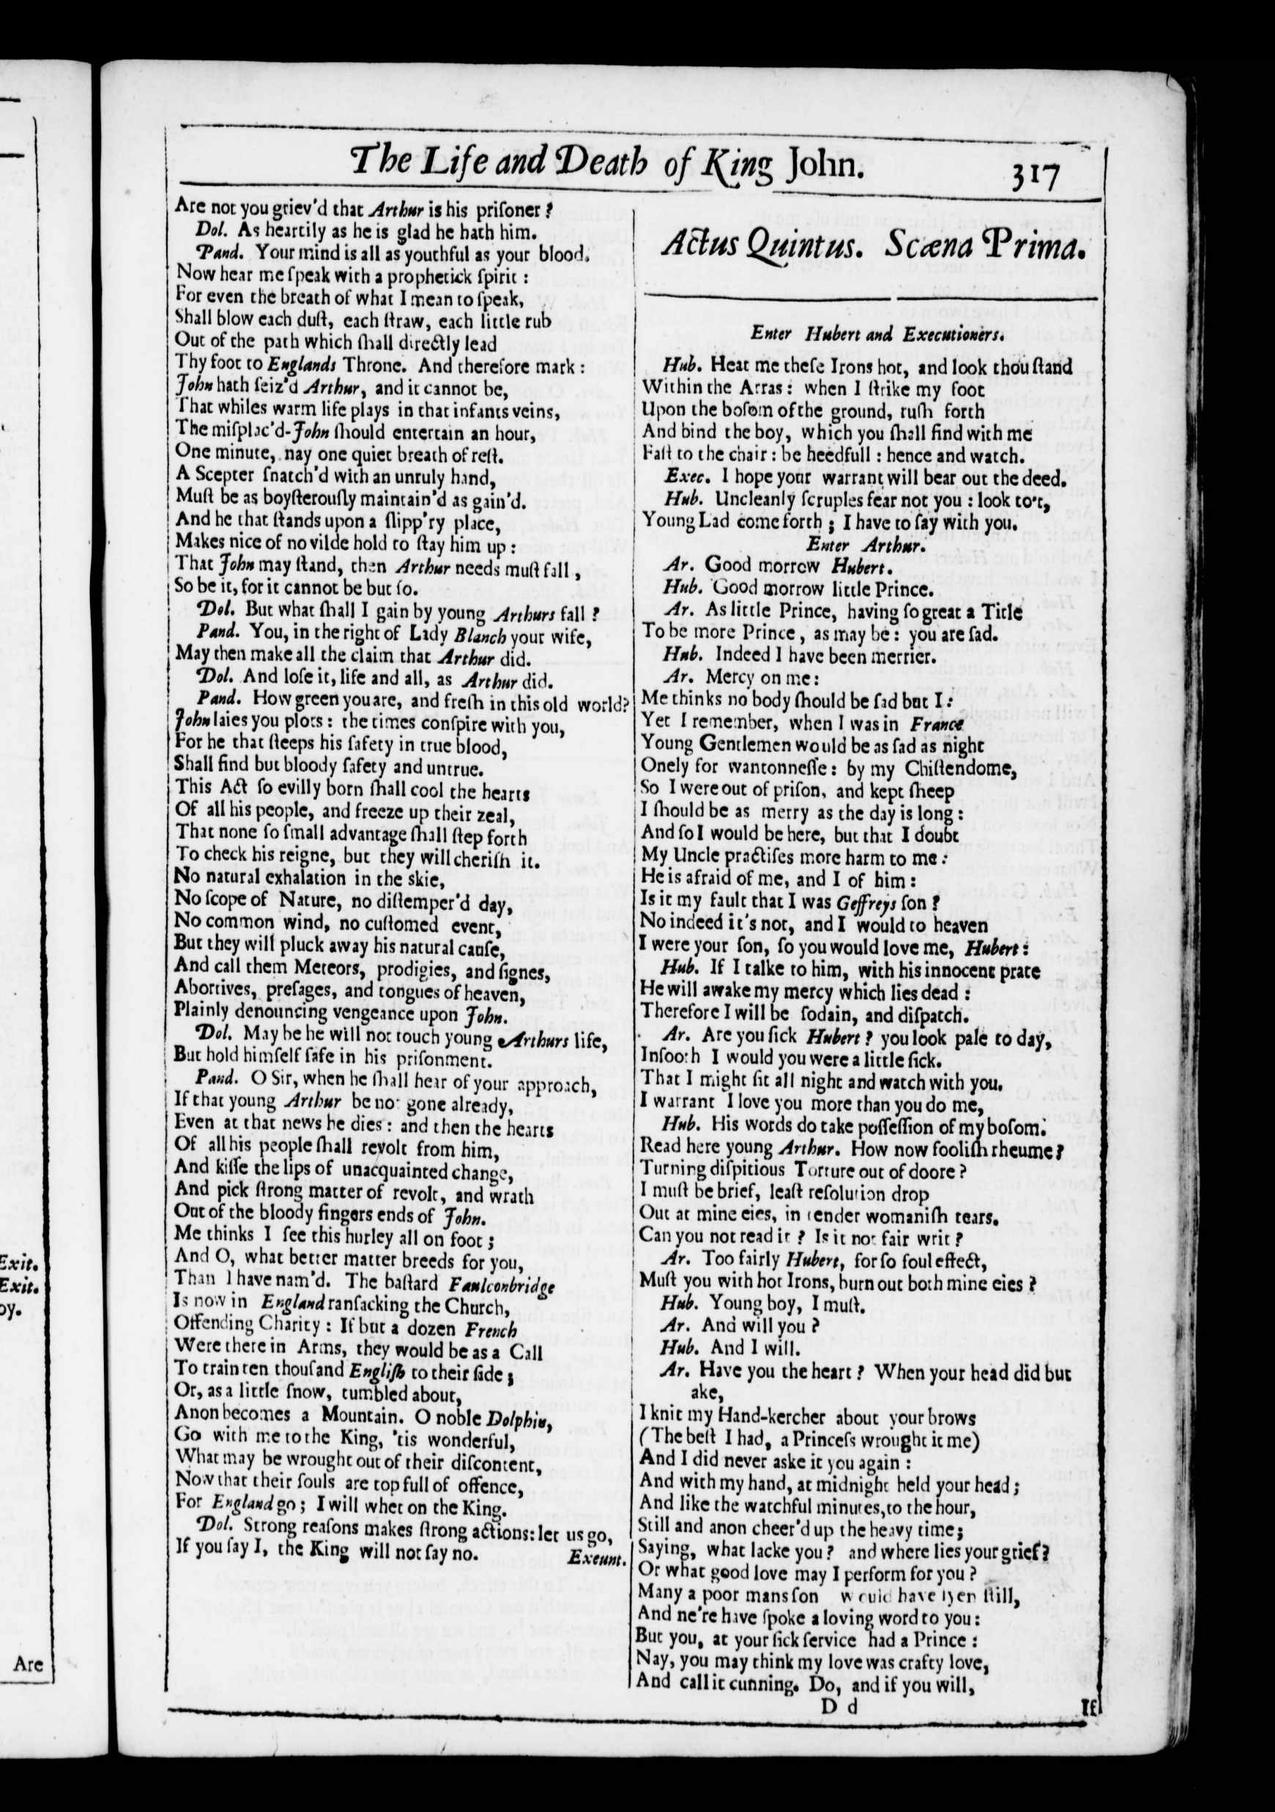 Image of Third Folio (New South Wales), page 342